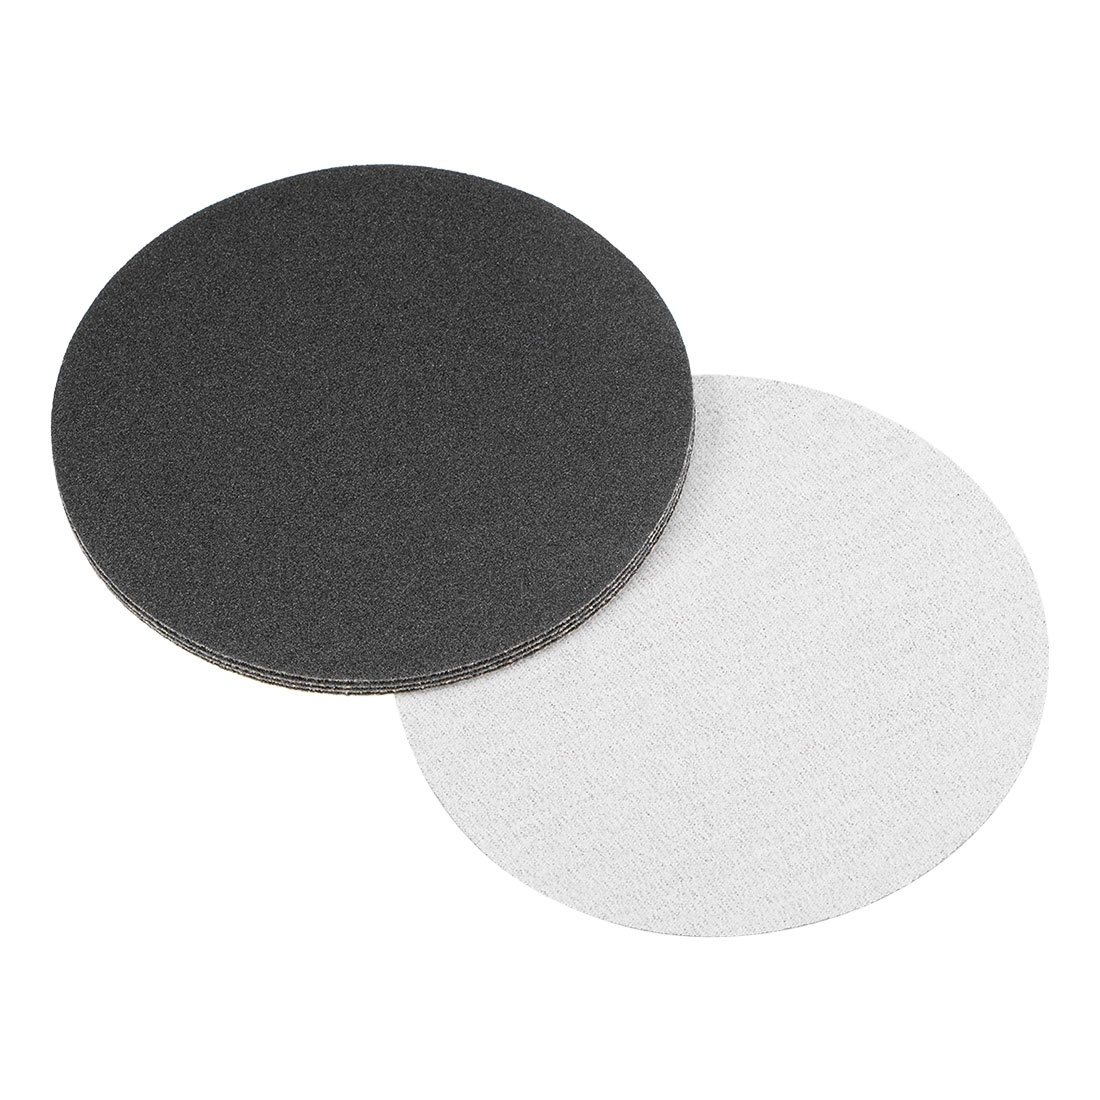 5 inch Wet Dry Discs 120 Grit Hook and Loop Sanding Disc Silicon Carbide 5pcs